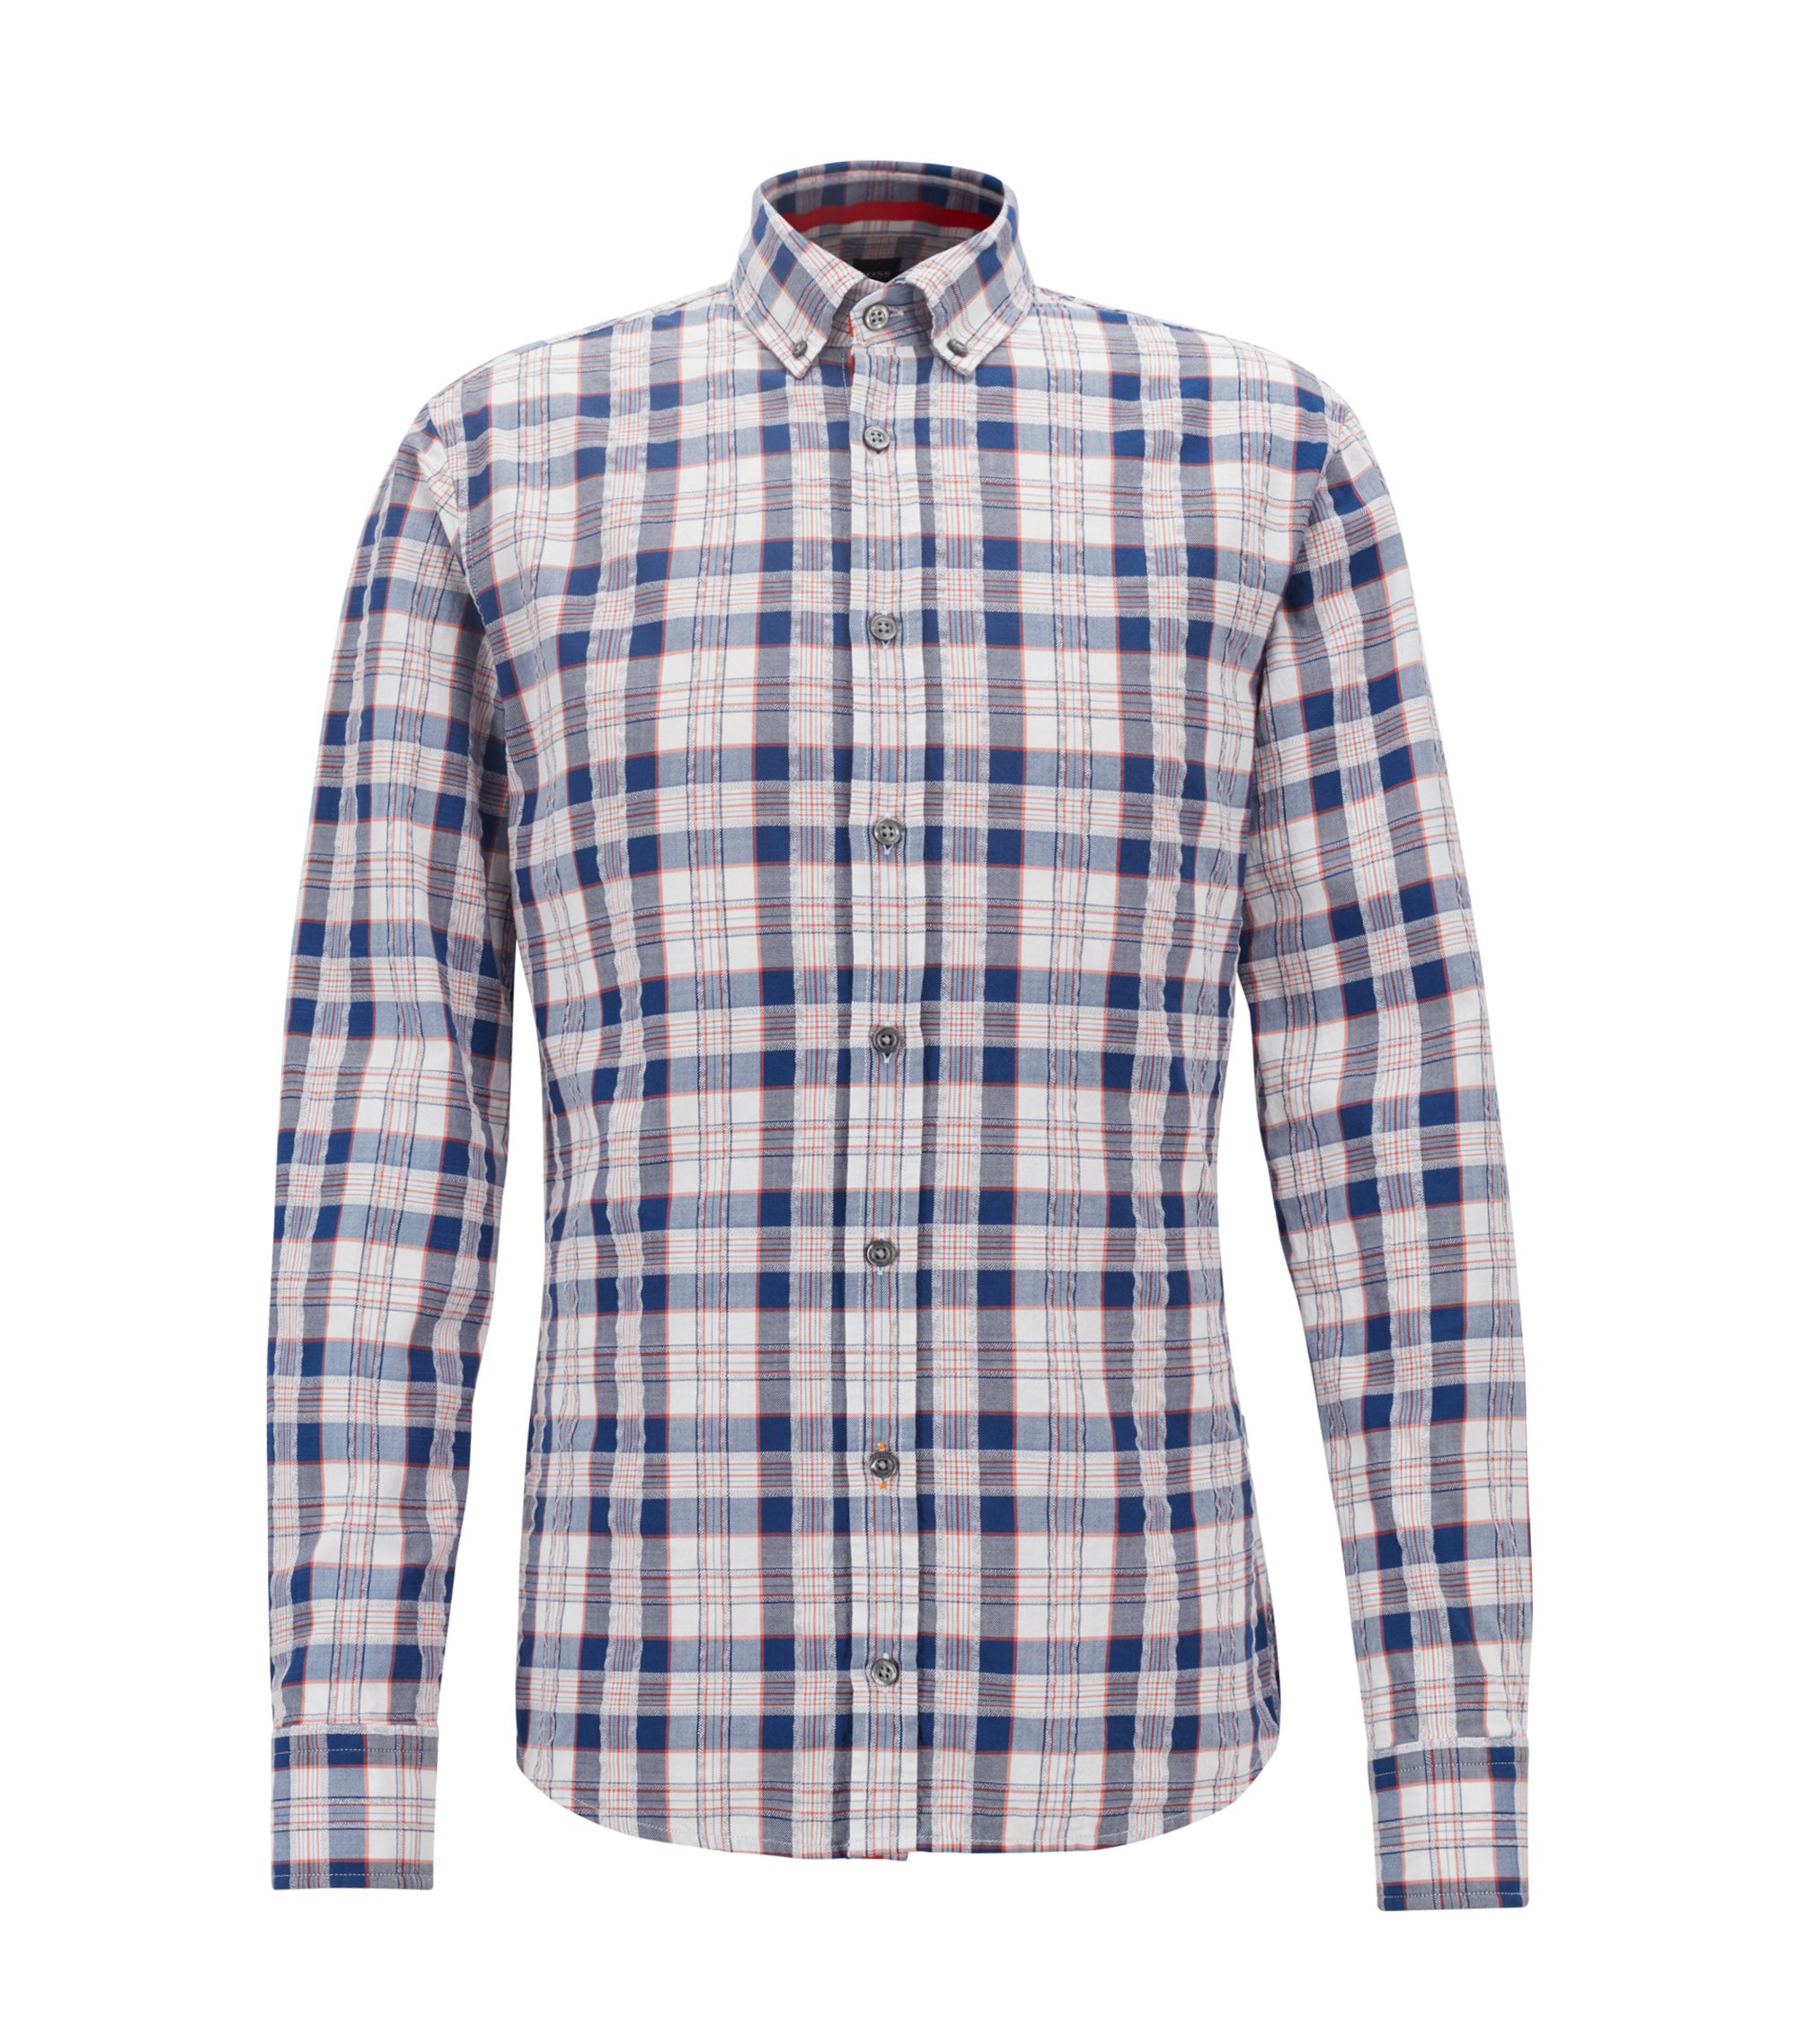 Camicia slim fit a quadri in twill di cotone seersucker, Blu